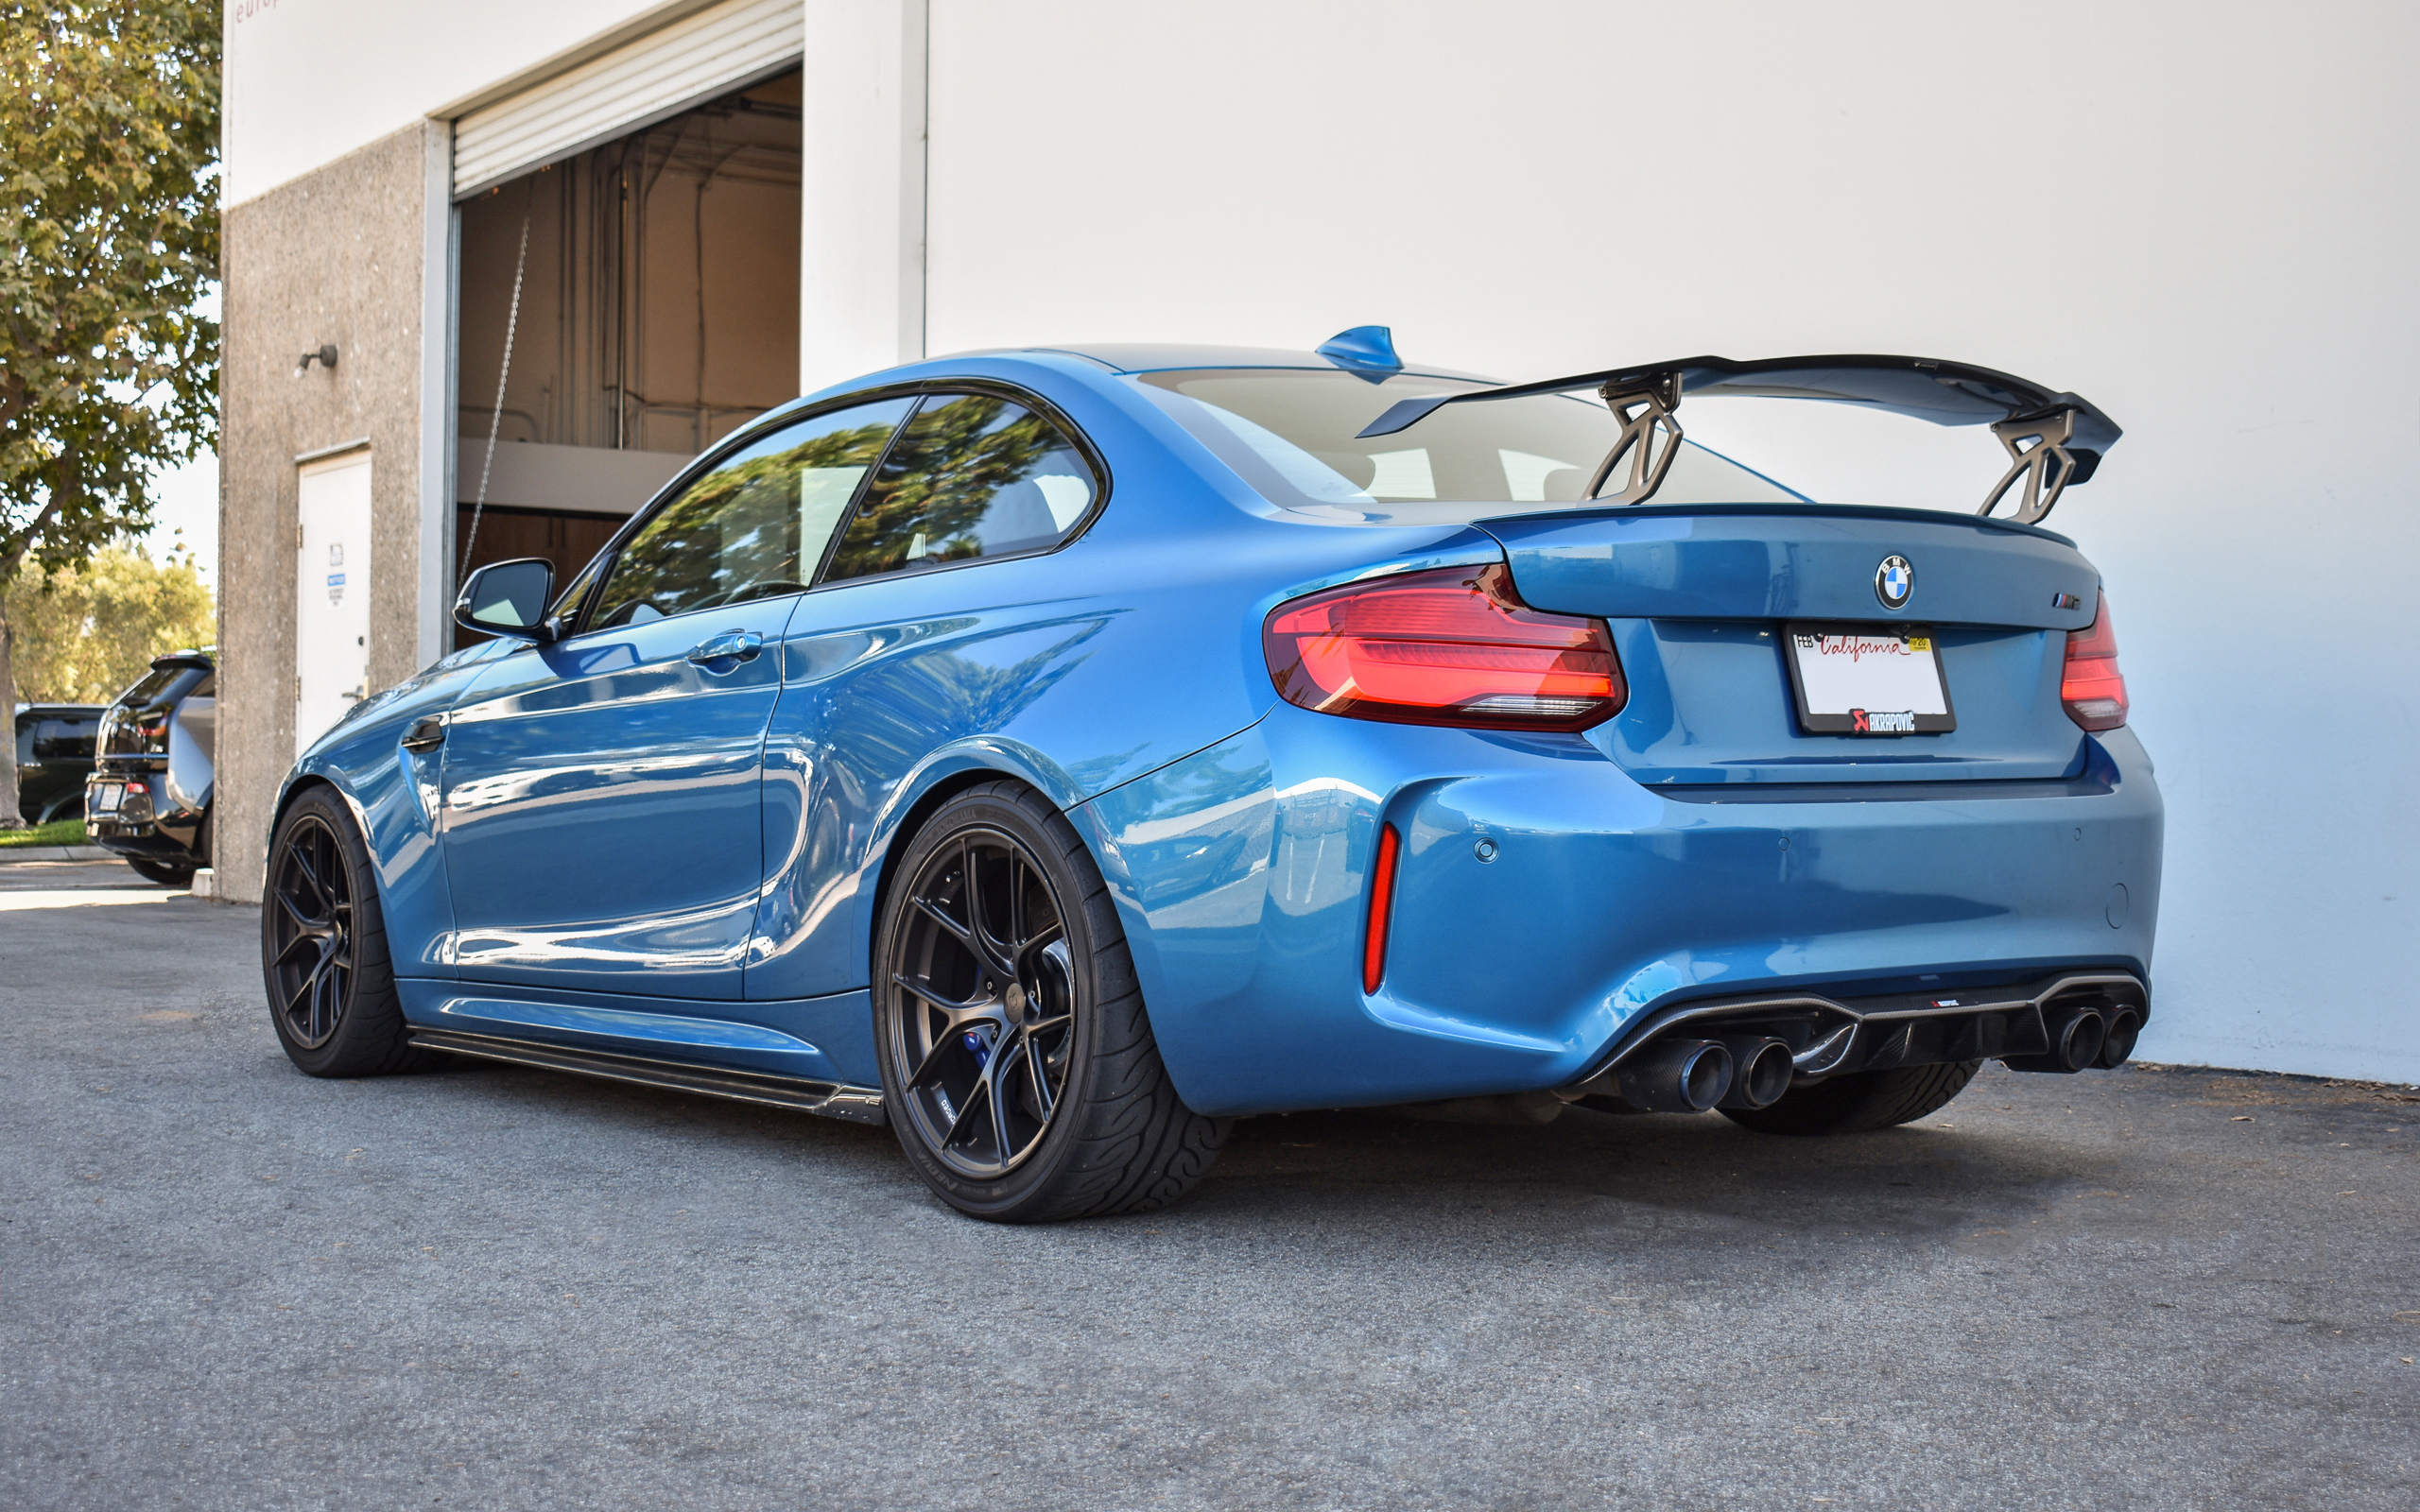 Long Beach Blue F87 M2 - Akrapvoic, Titan7 & Vorsteiner